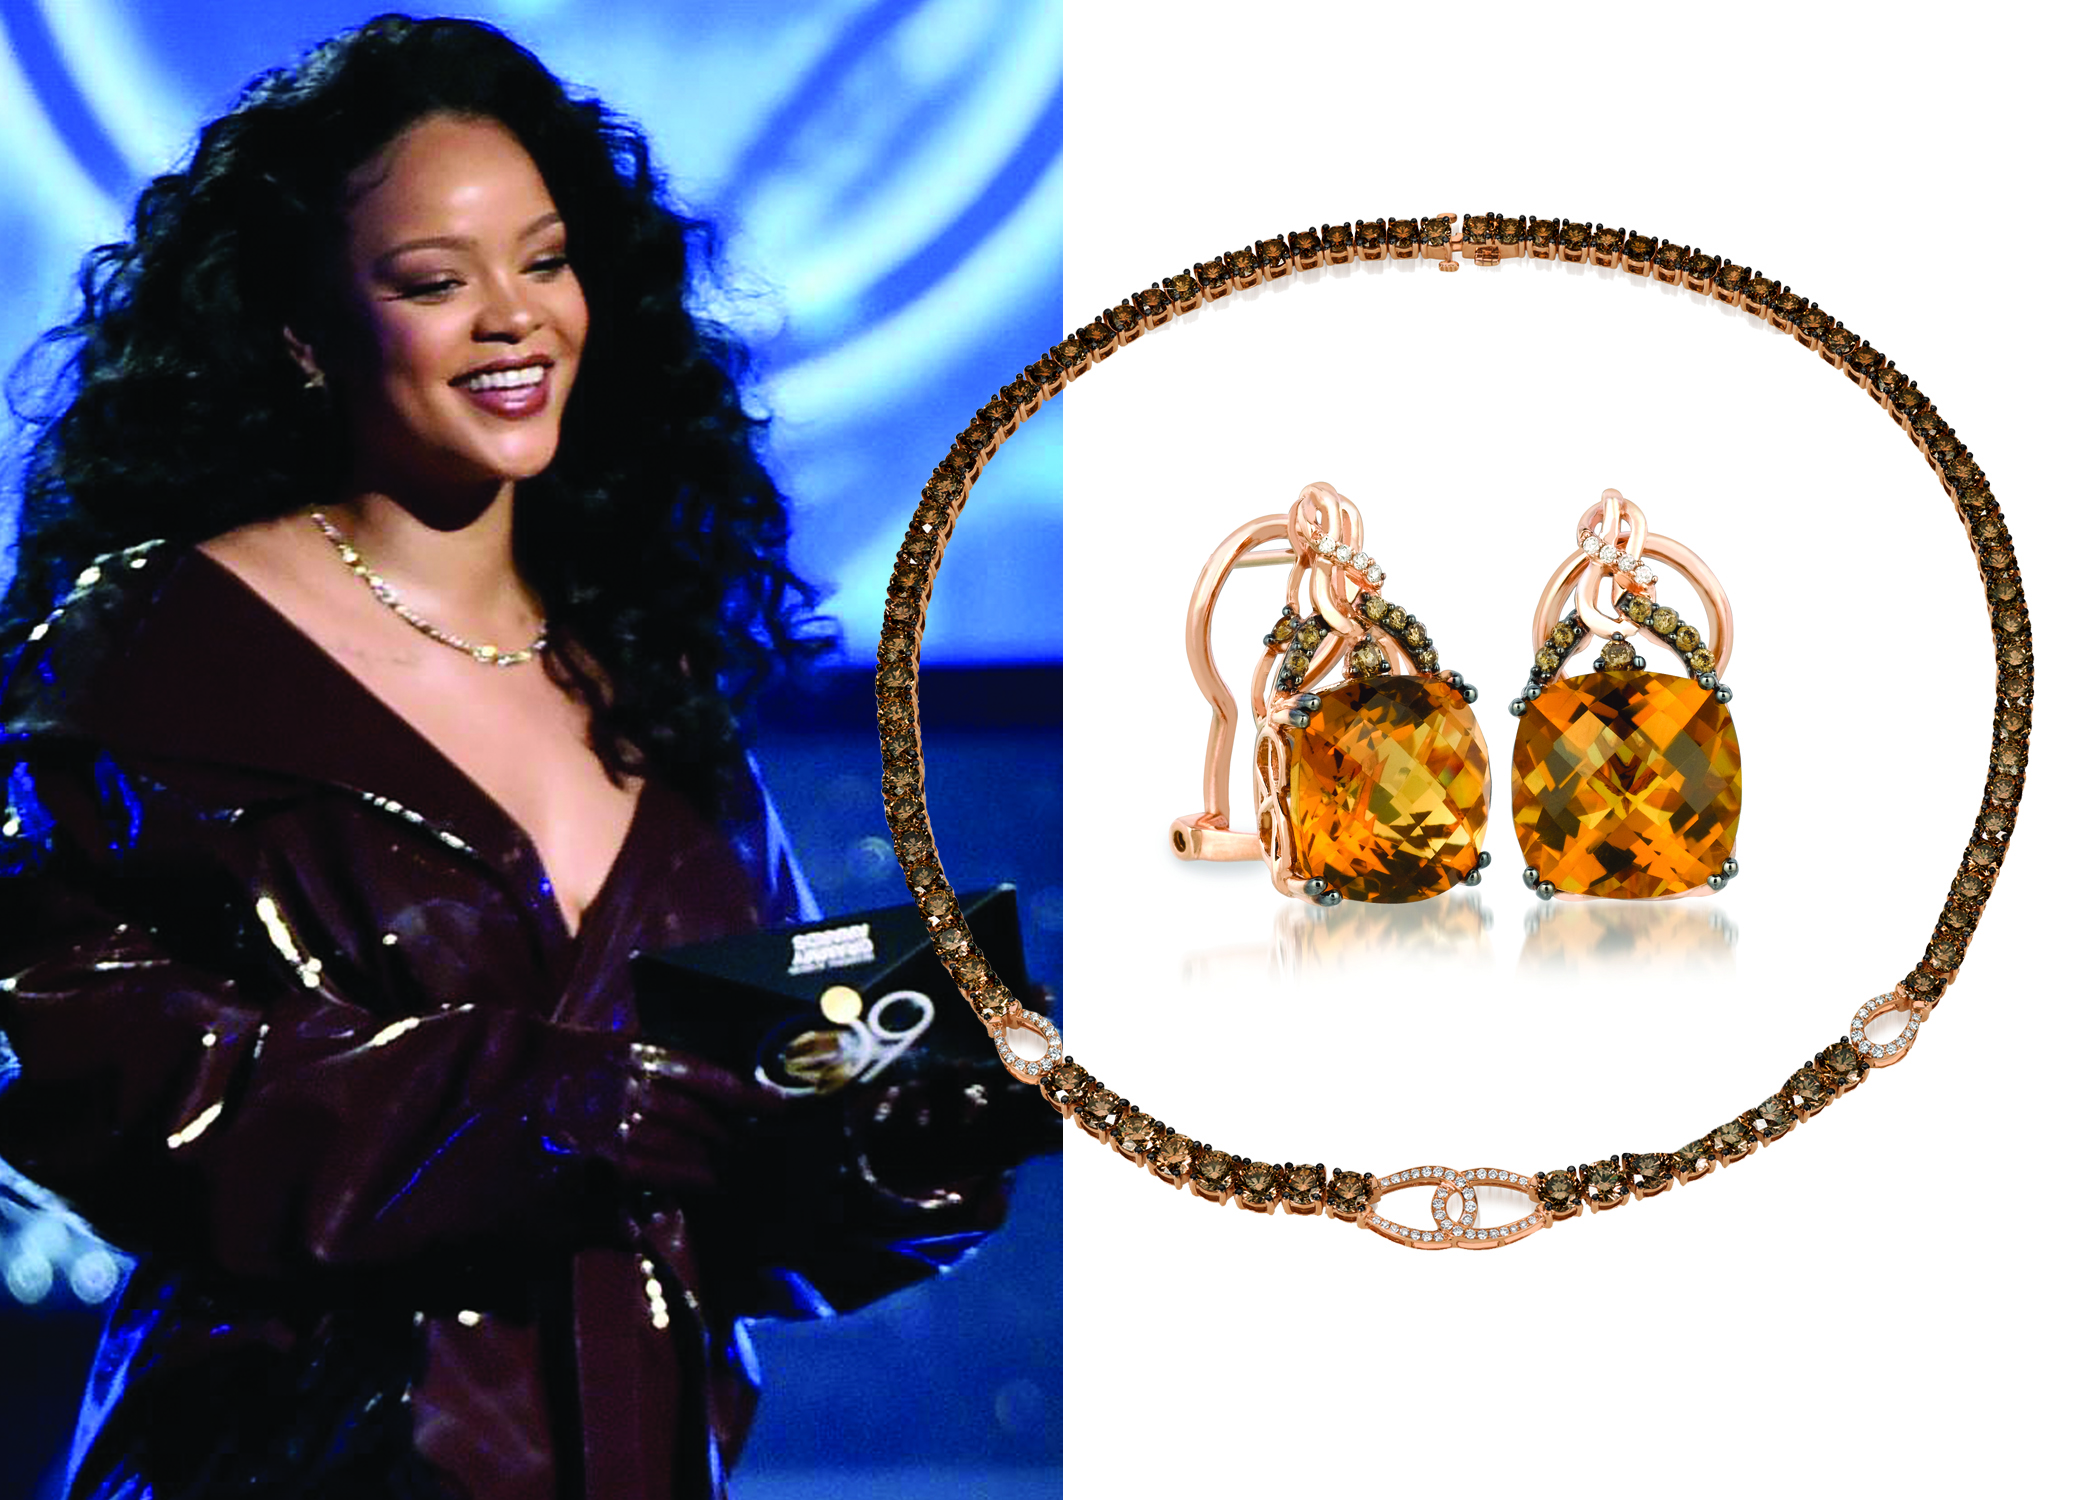 Le Vian® Rocked with Grammy's Hottest Stars On Stage at the 60th Annual Grammy Awards